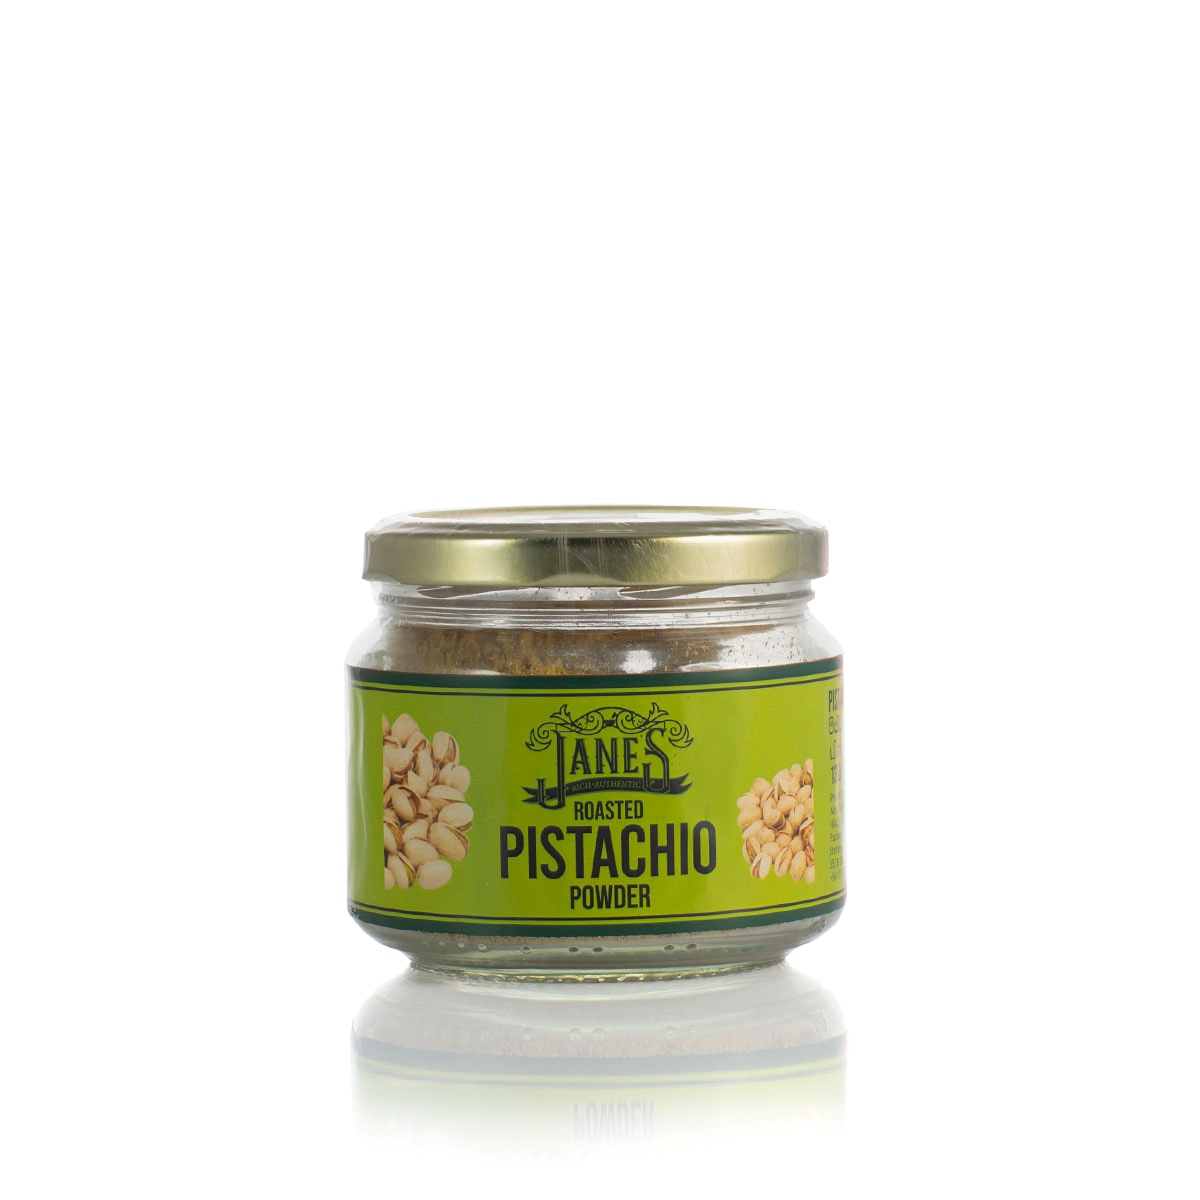 Janes Roasted Pistachio Powder 130G - in Sri Lanka